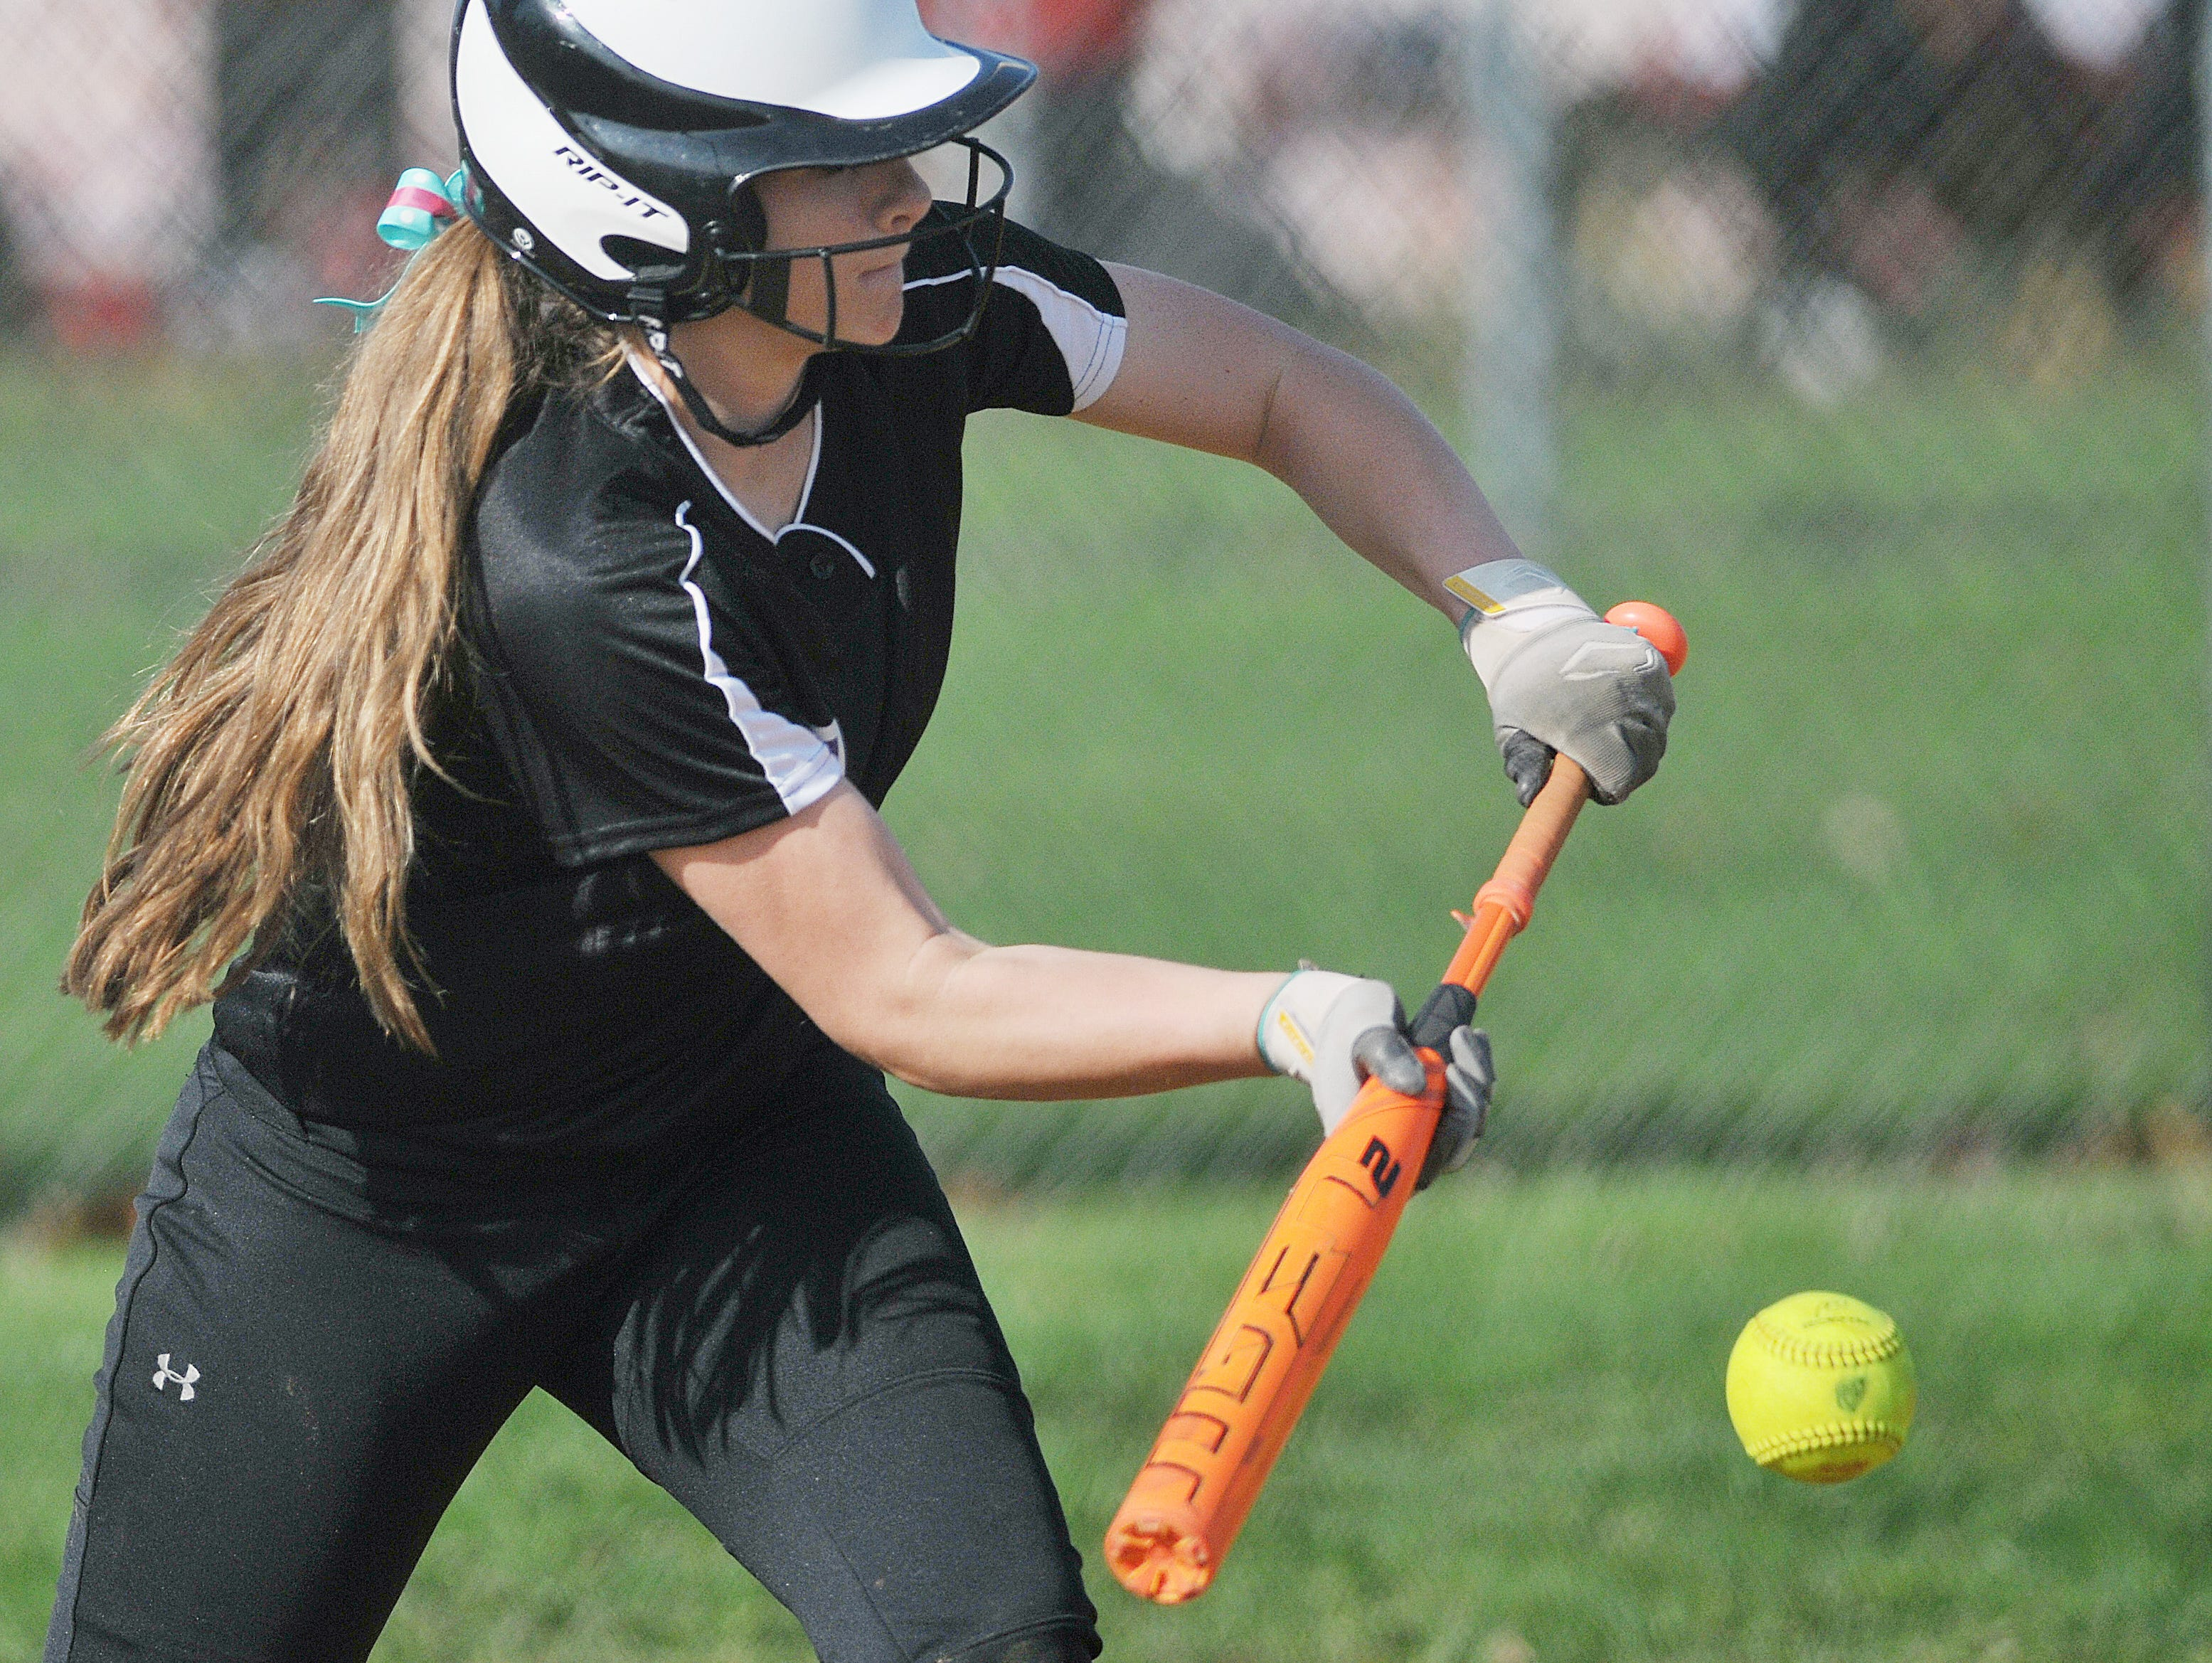 Lexington's Chelsie Alt attempts a bunt against Mount St. Dominic during the Wendy;s Spring Classic at Brookside Park West Field No. 2 Friday.